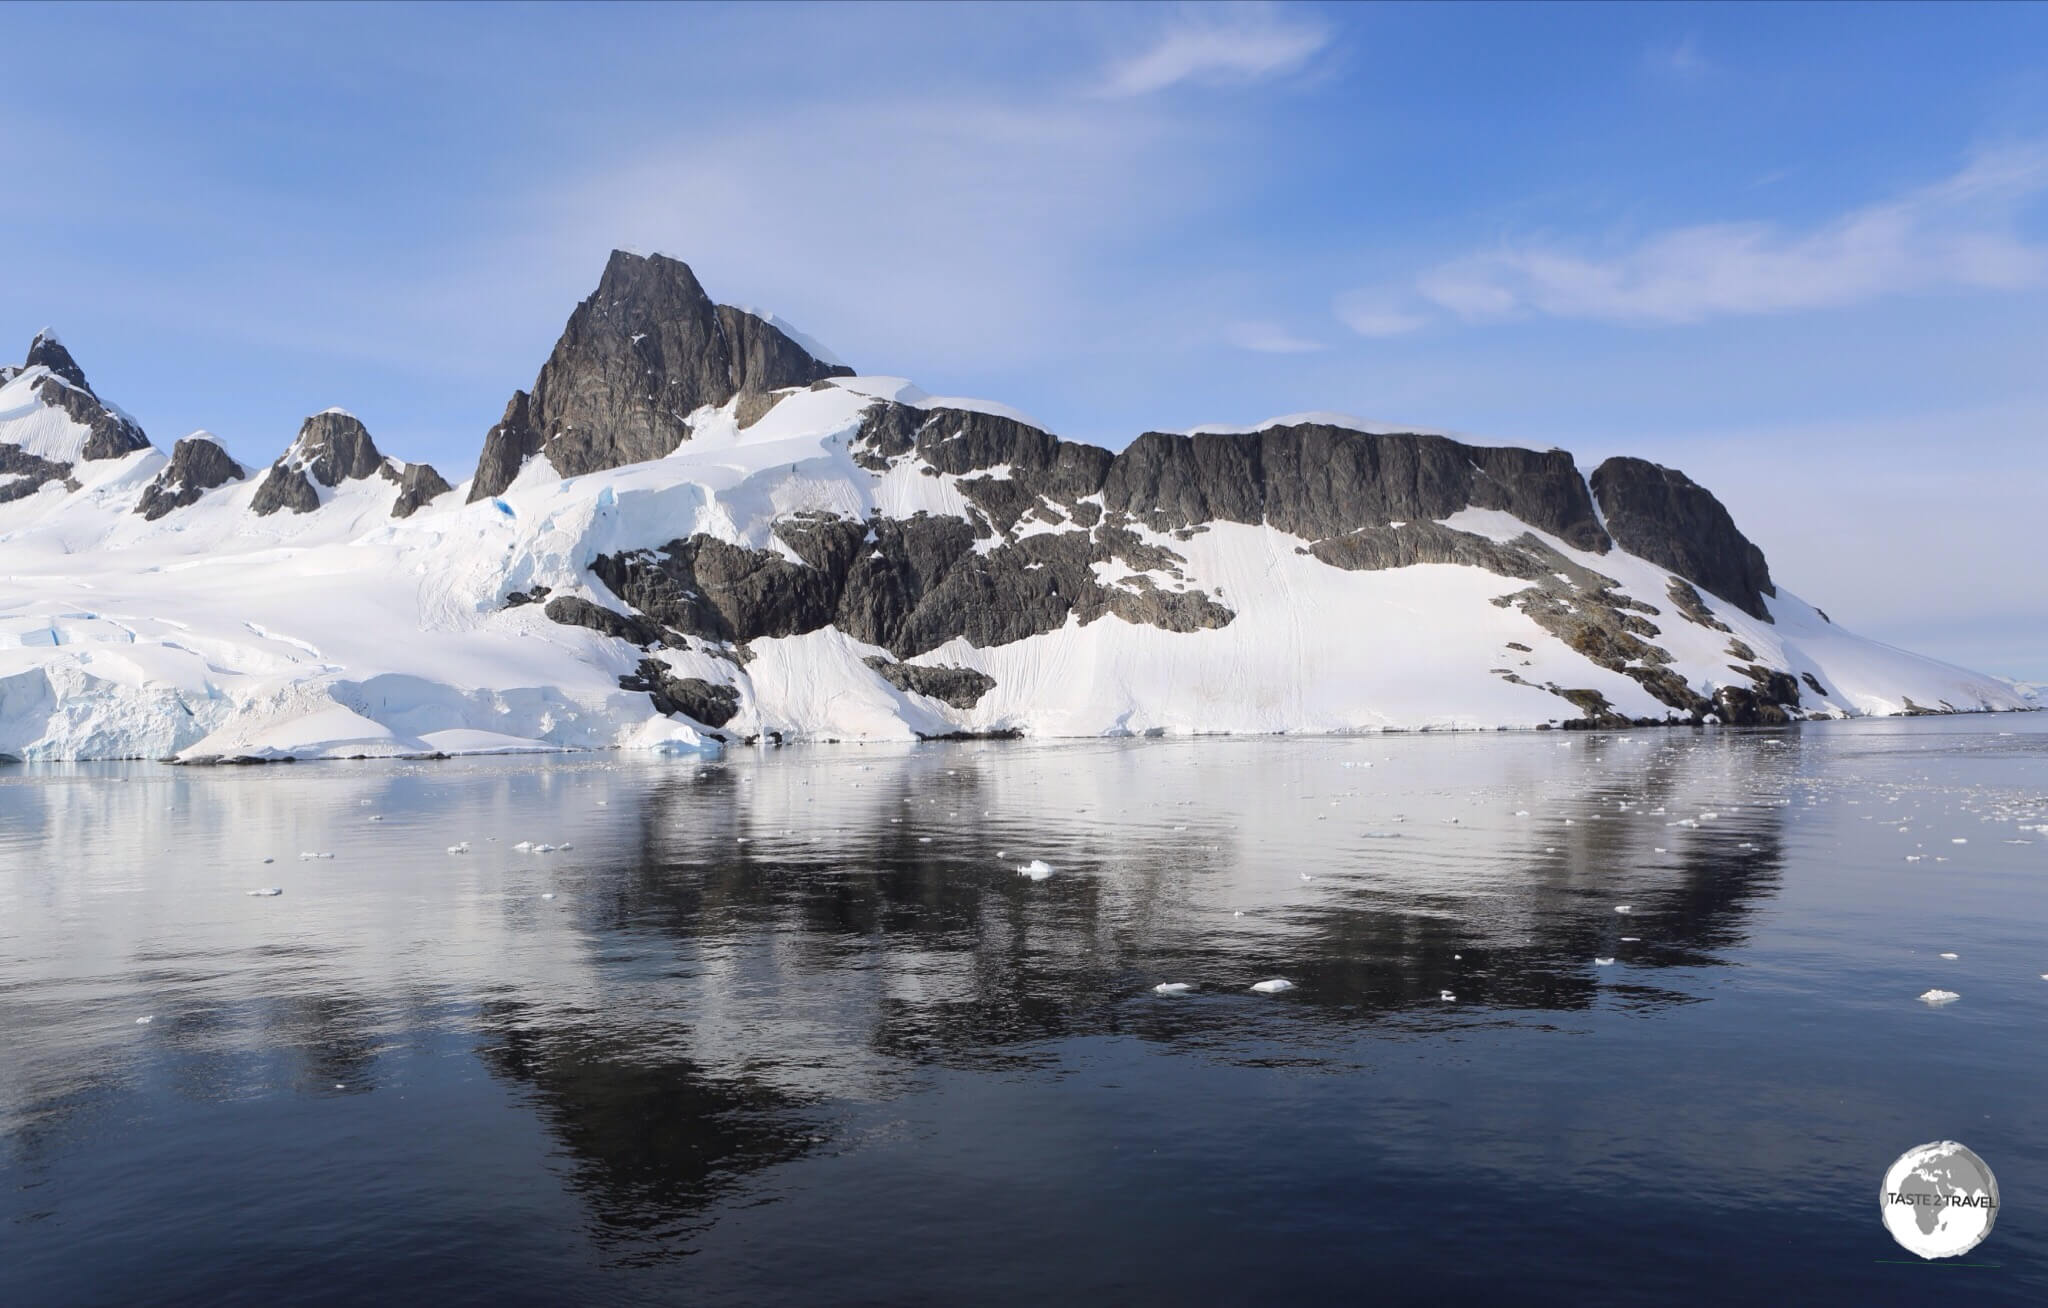 The magnificent scenery of the Graham passage, Antarctica.